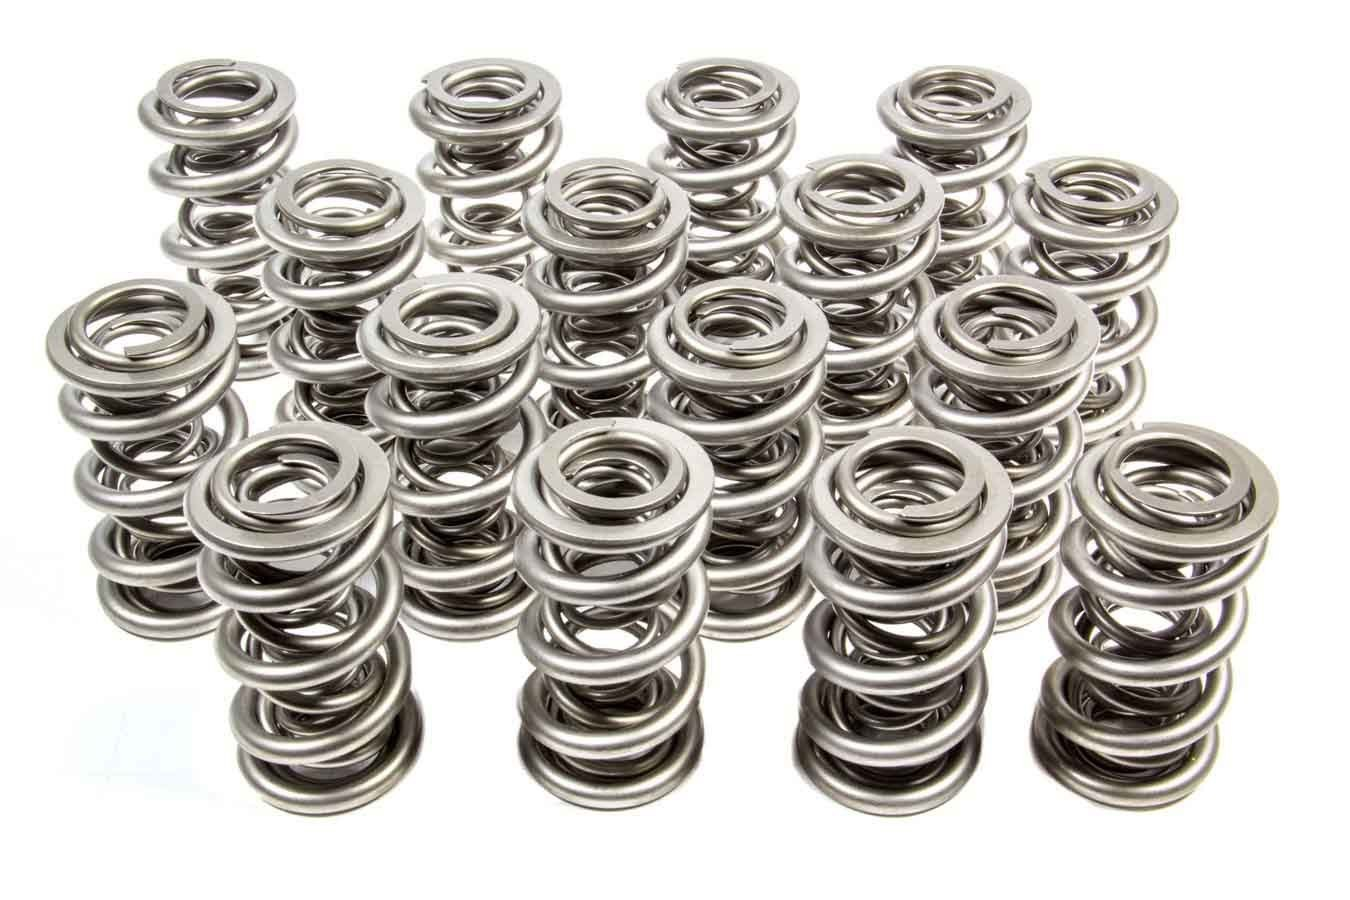 PAC Racing Springs PAC-1351H Valve Spring, 1300 Series, Triple Spring, 752 lb/in Spring Rate, 1.160 in Coil Bind, 1.667 in OD, Set of 16